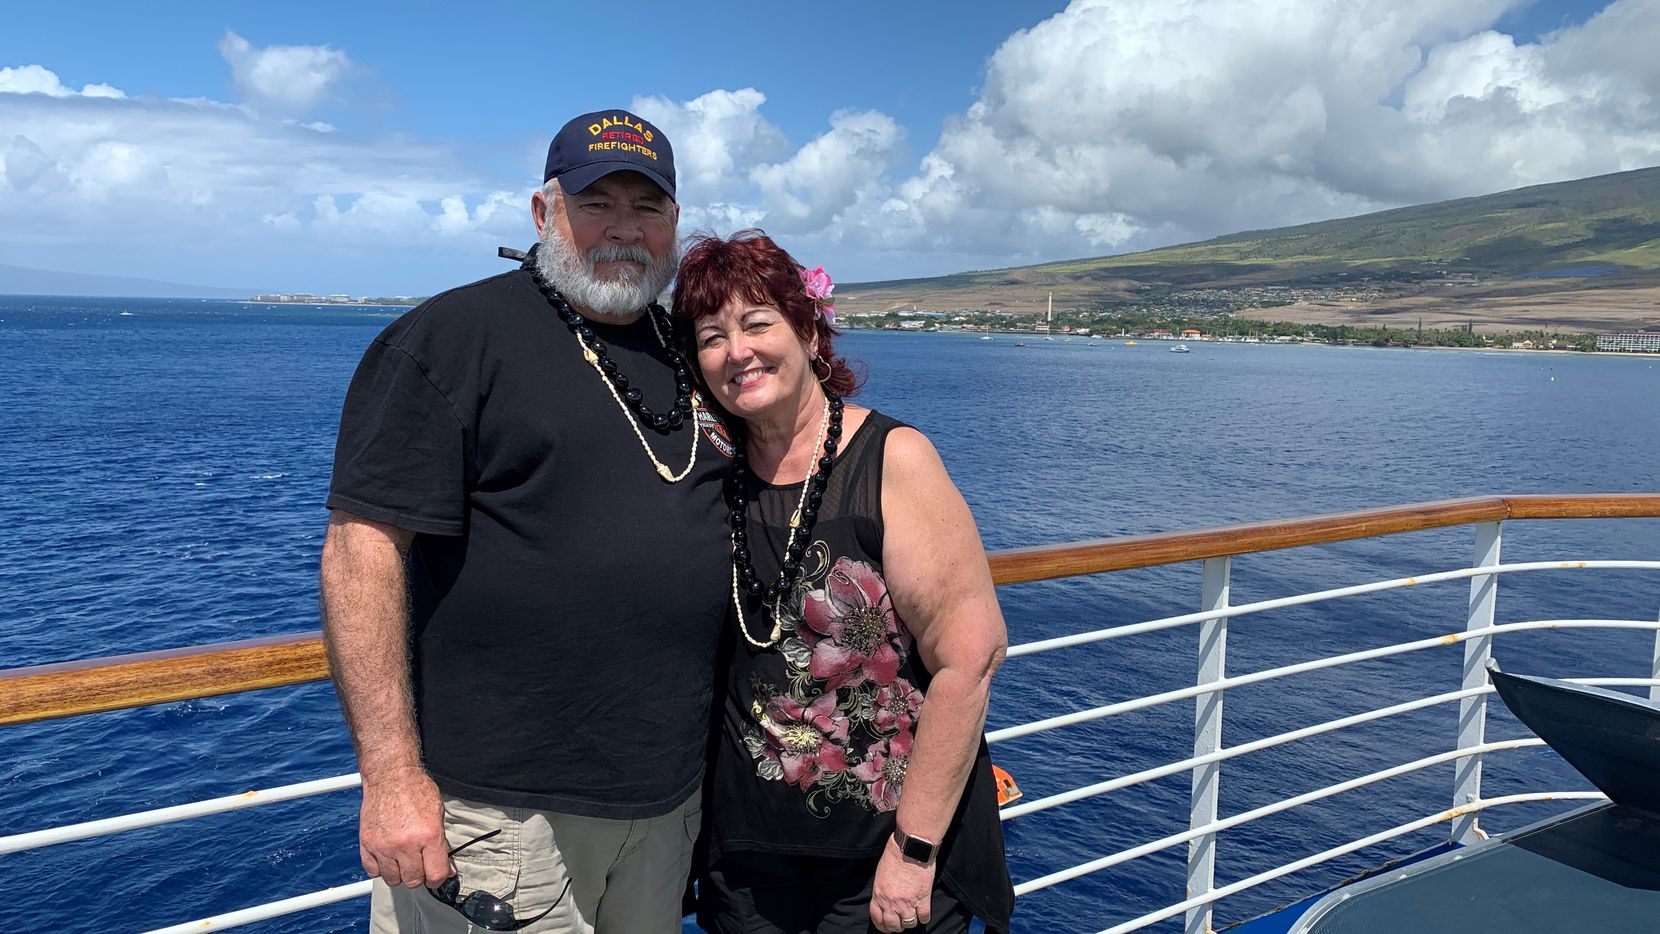 Susan and Michael Dorety are shown on a Grand Princess cruise they took in February to celebrate their 40th wedding anniversary. The retired Dallas firefighter later died alone from COVID-19 in a California hospital room after becoming infected on the ship.